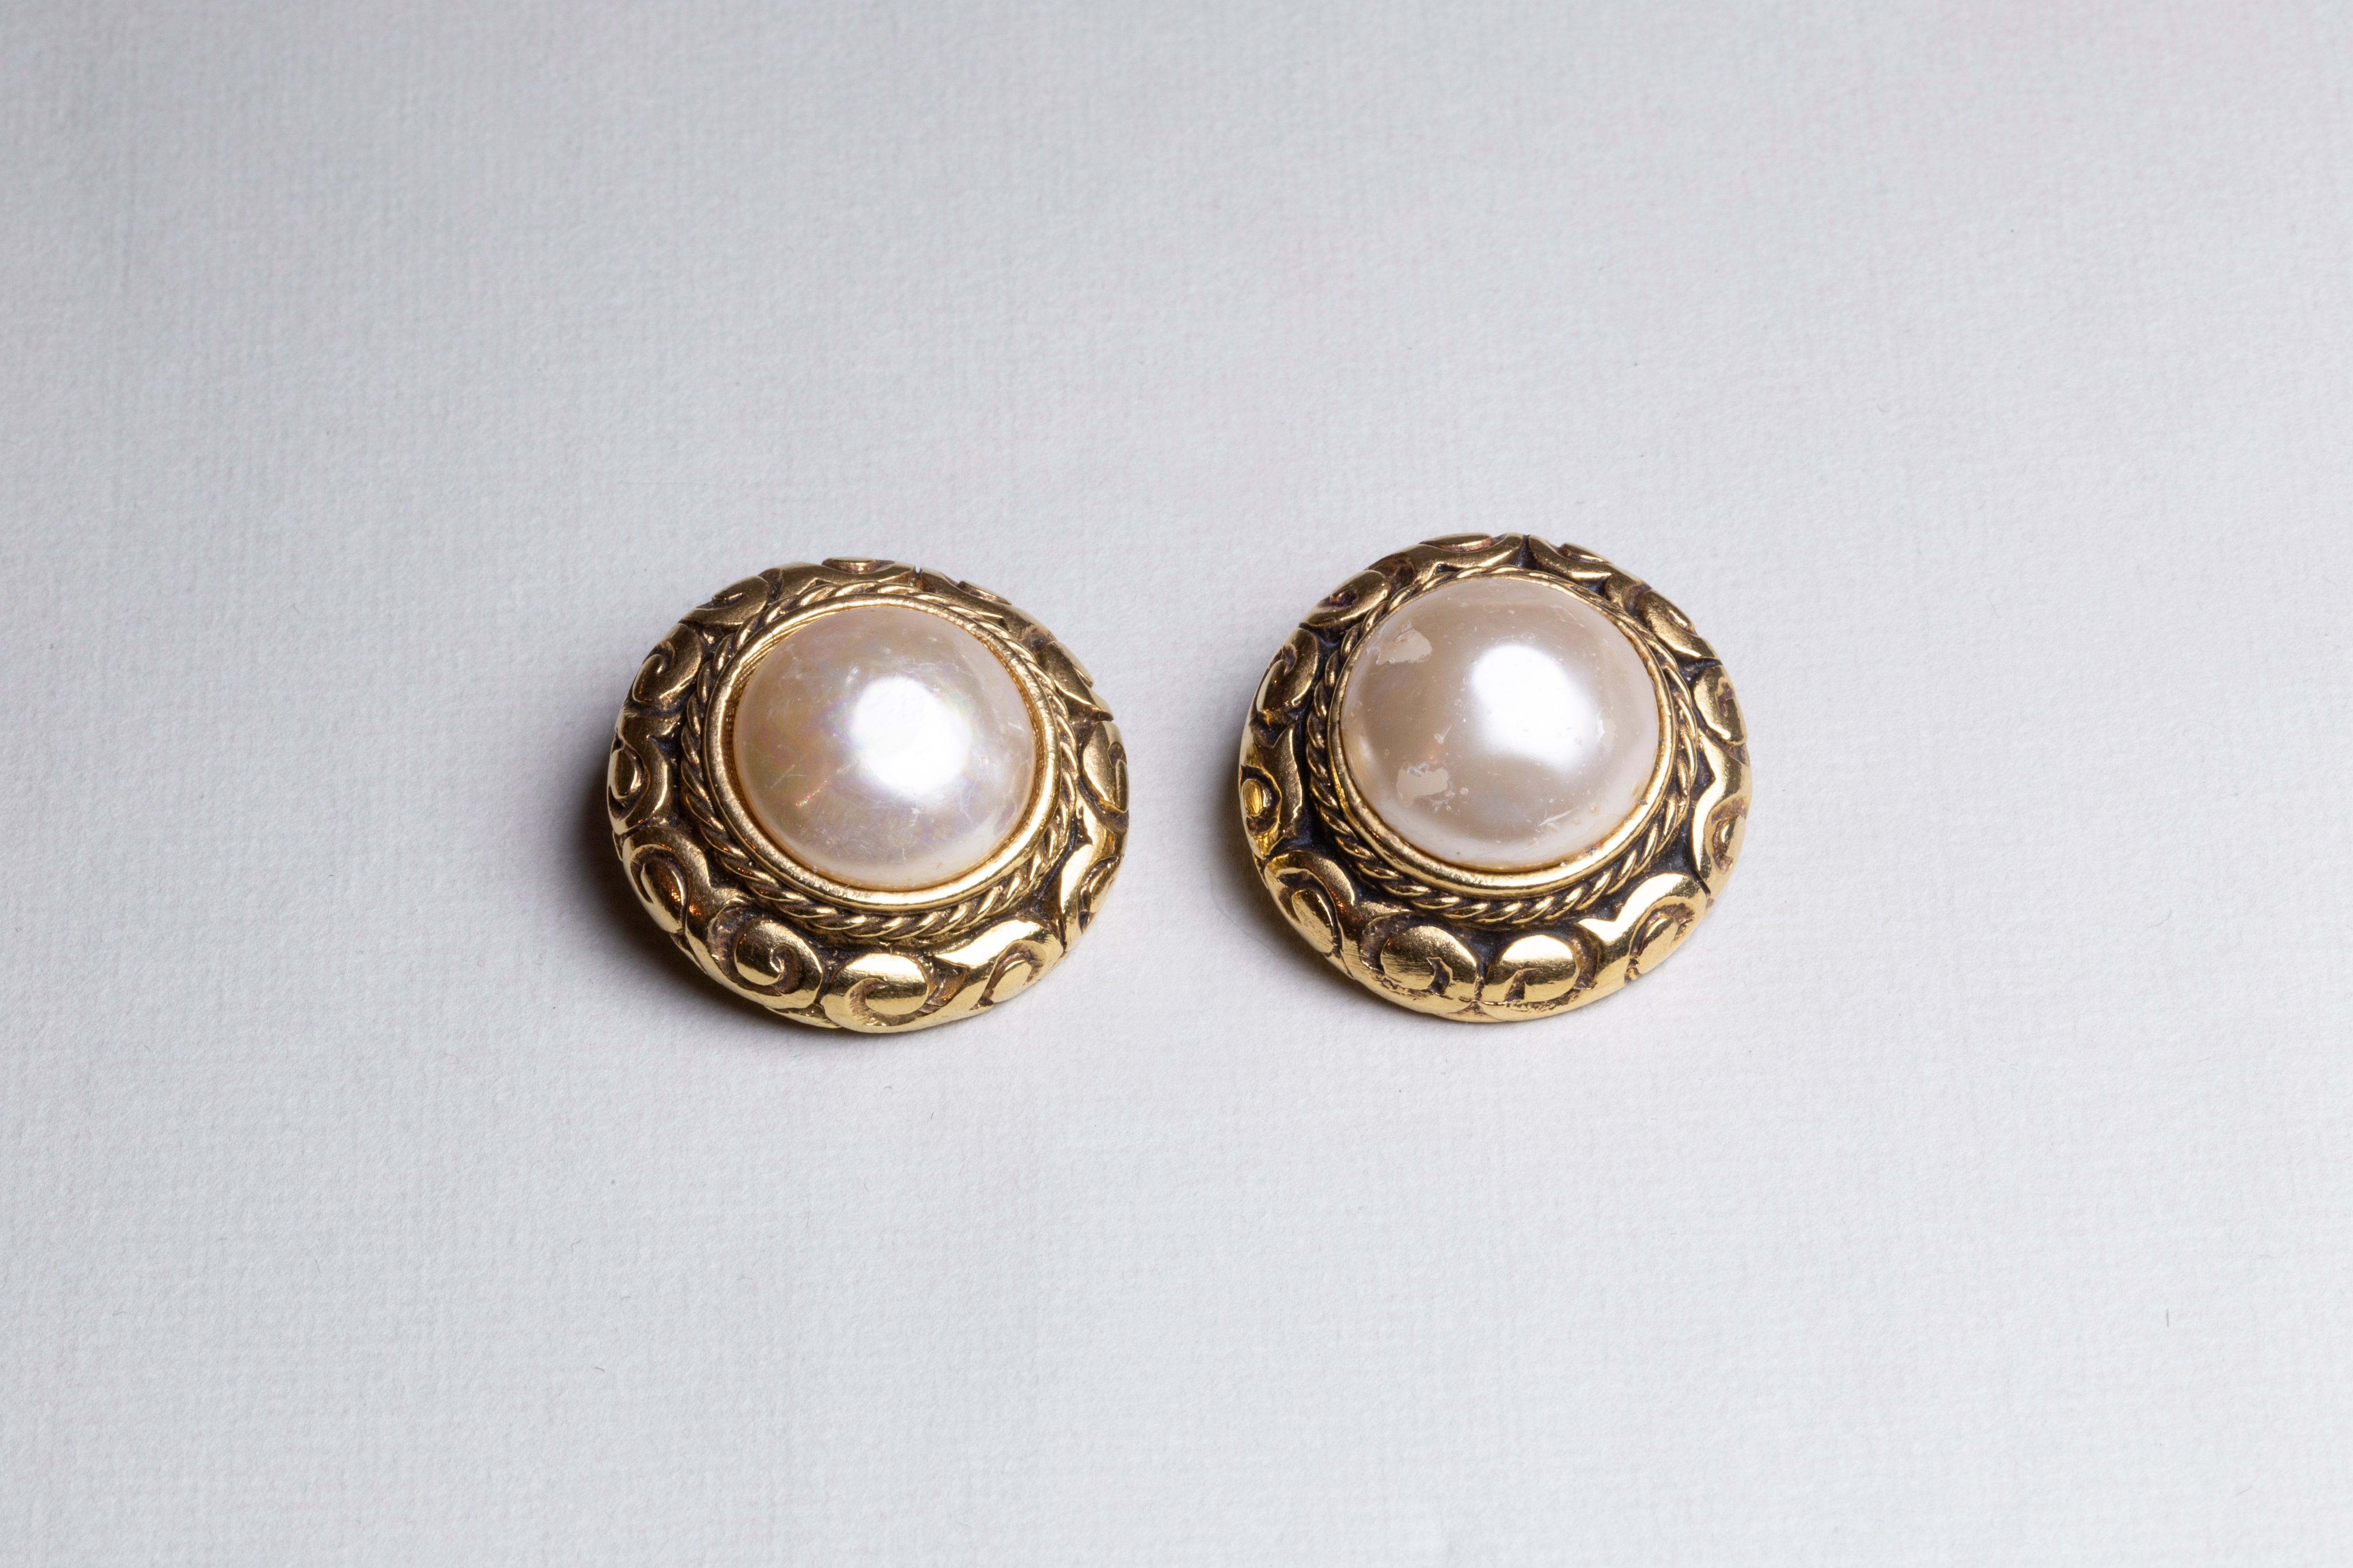 Another vintage clip-ons by Chanel available at feltlondon.com